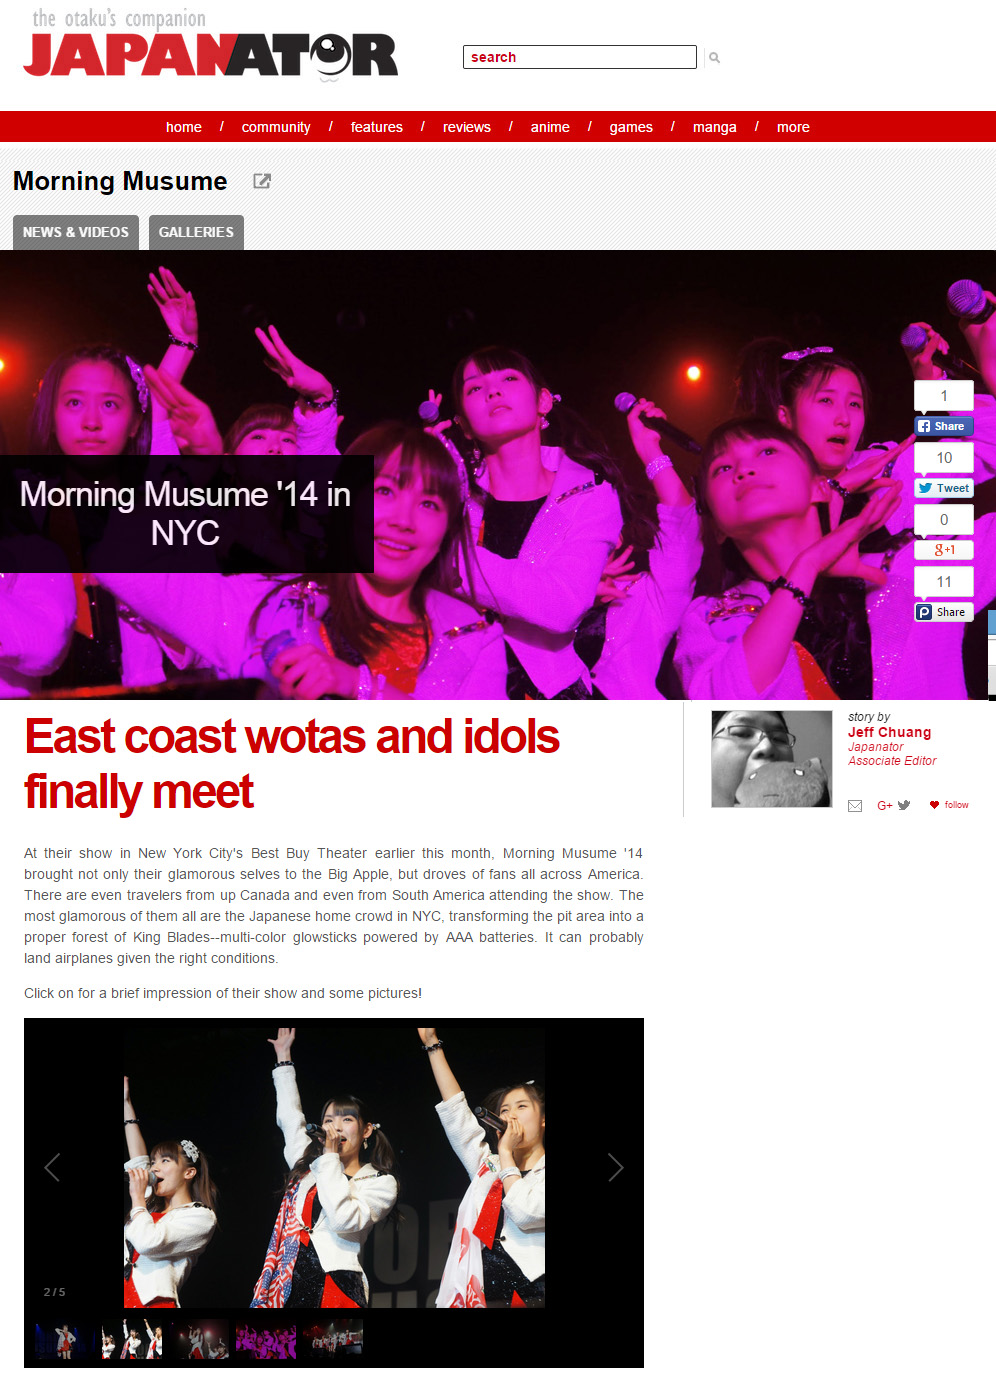 RMMS-Morning-Musume-14-NYC-2014-Live-Report-Japanator